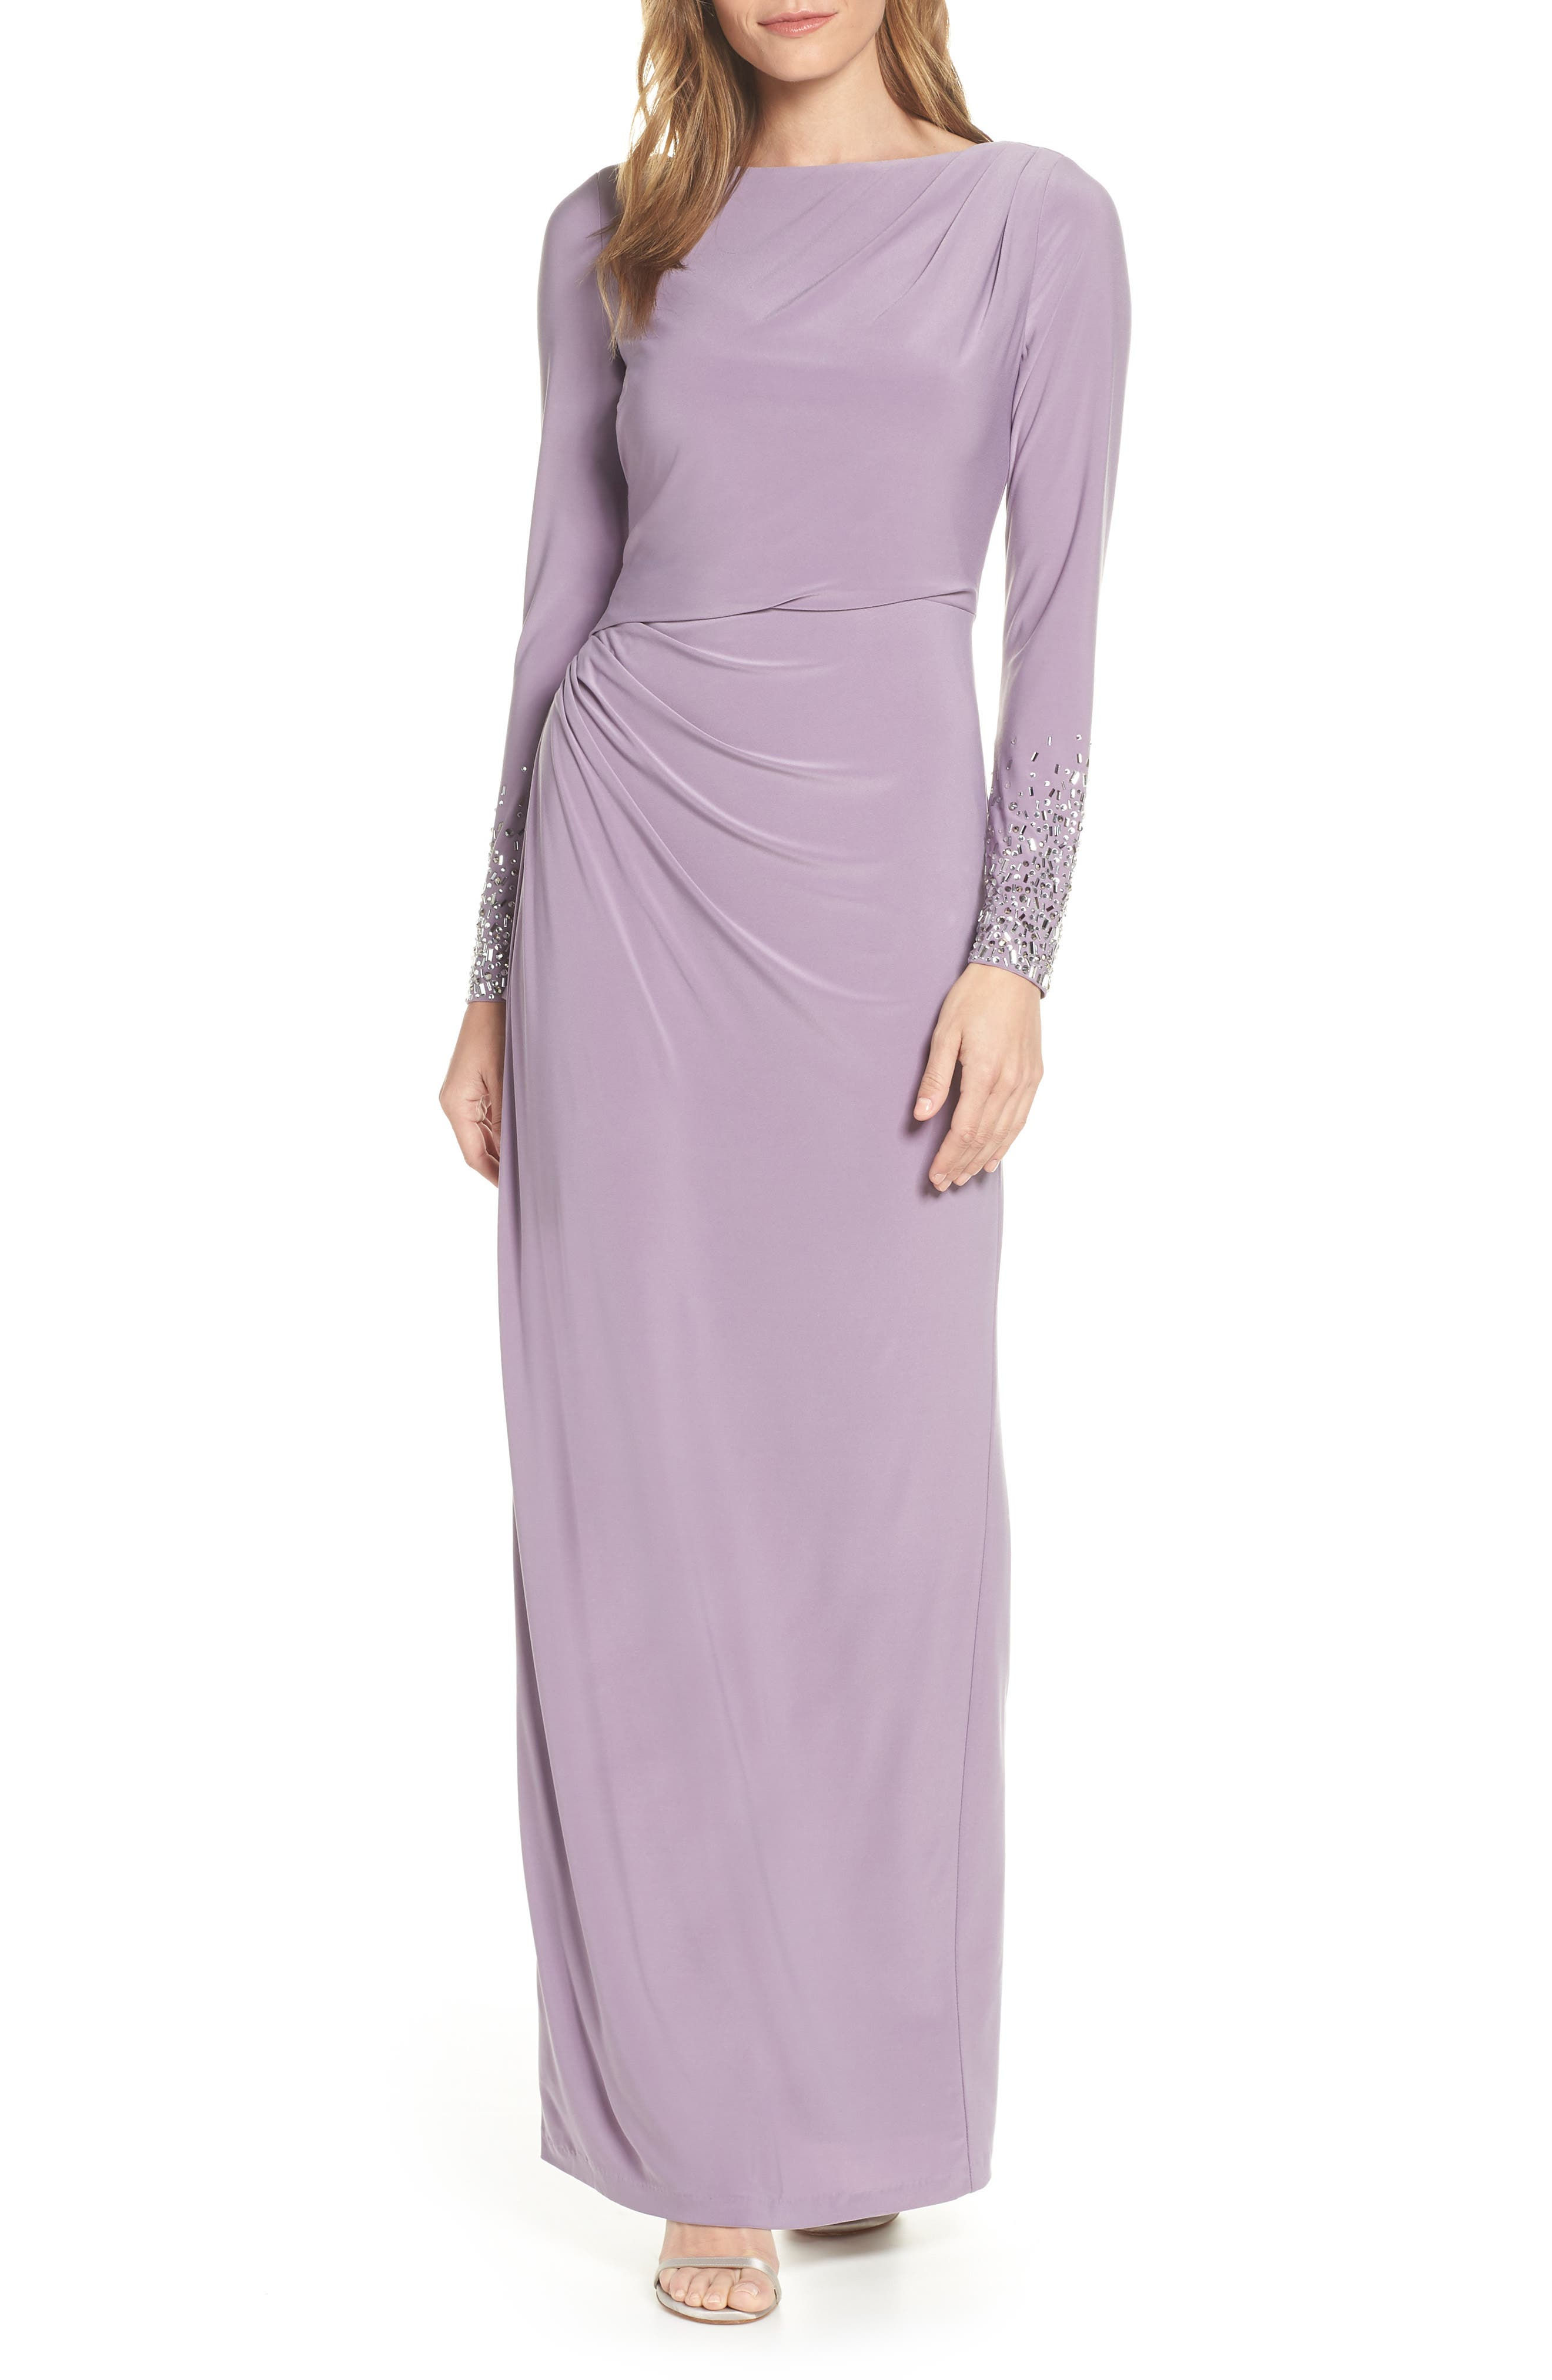 VINCE CAMUTO,                             Embellished Sleeve Ruched Evening Dress,                             Main thumbnail 1, color,                             LILAC